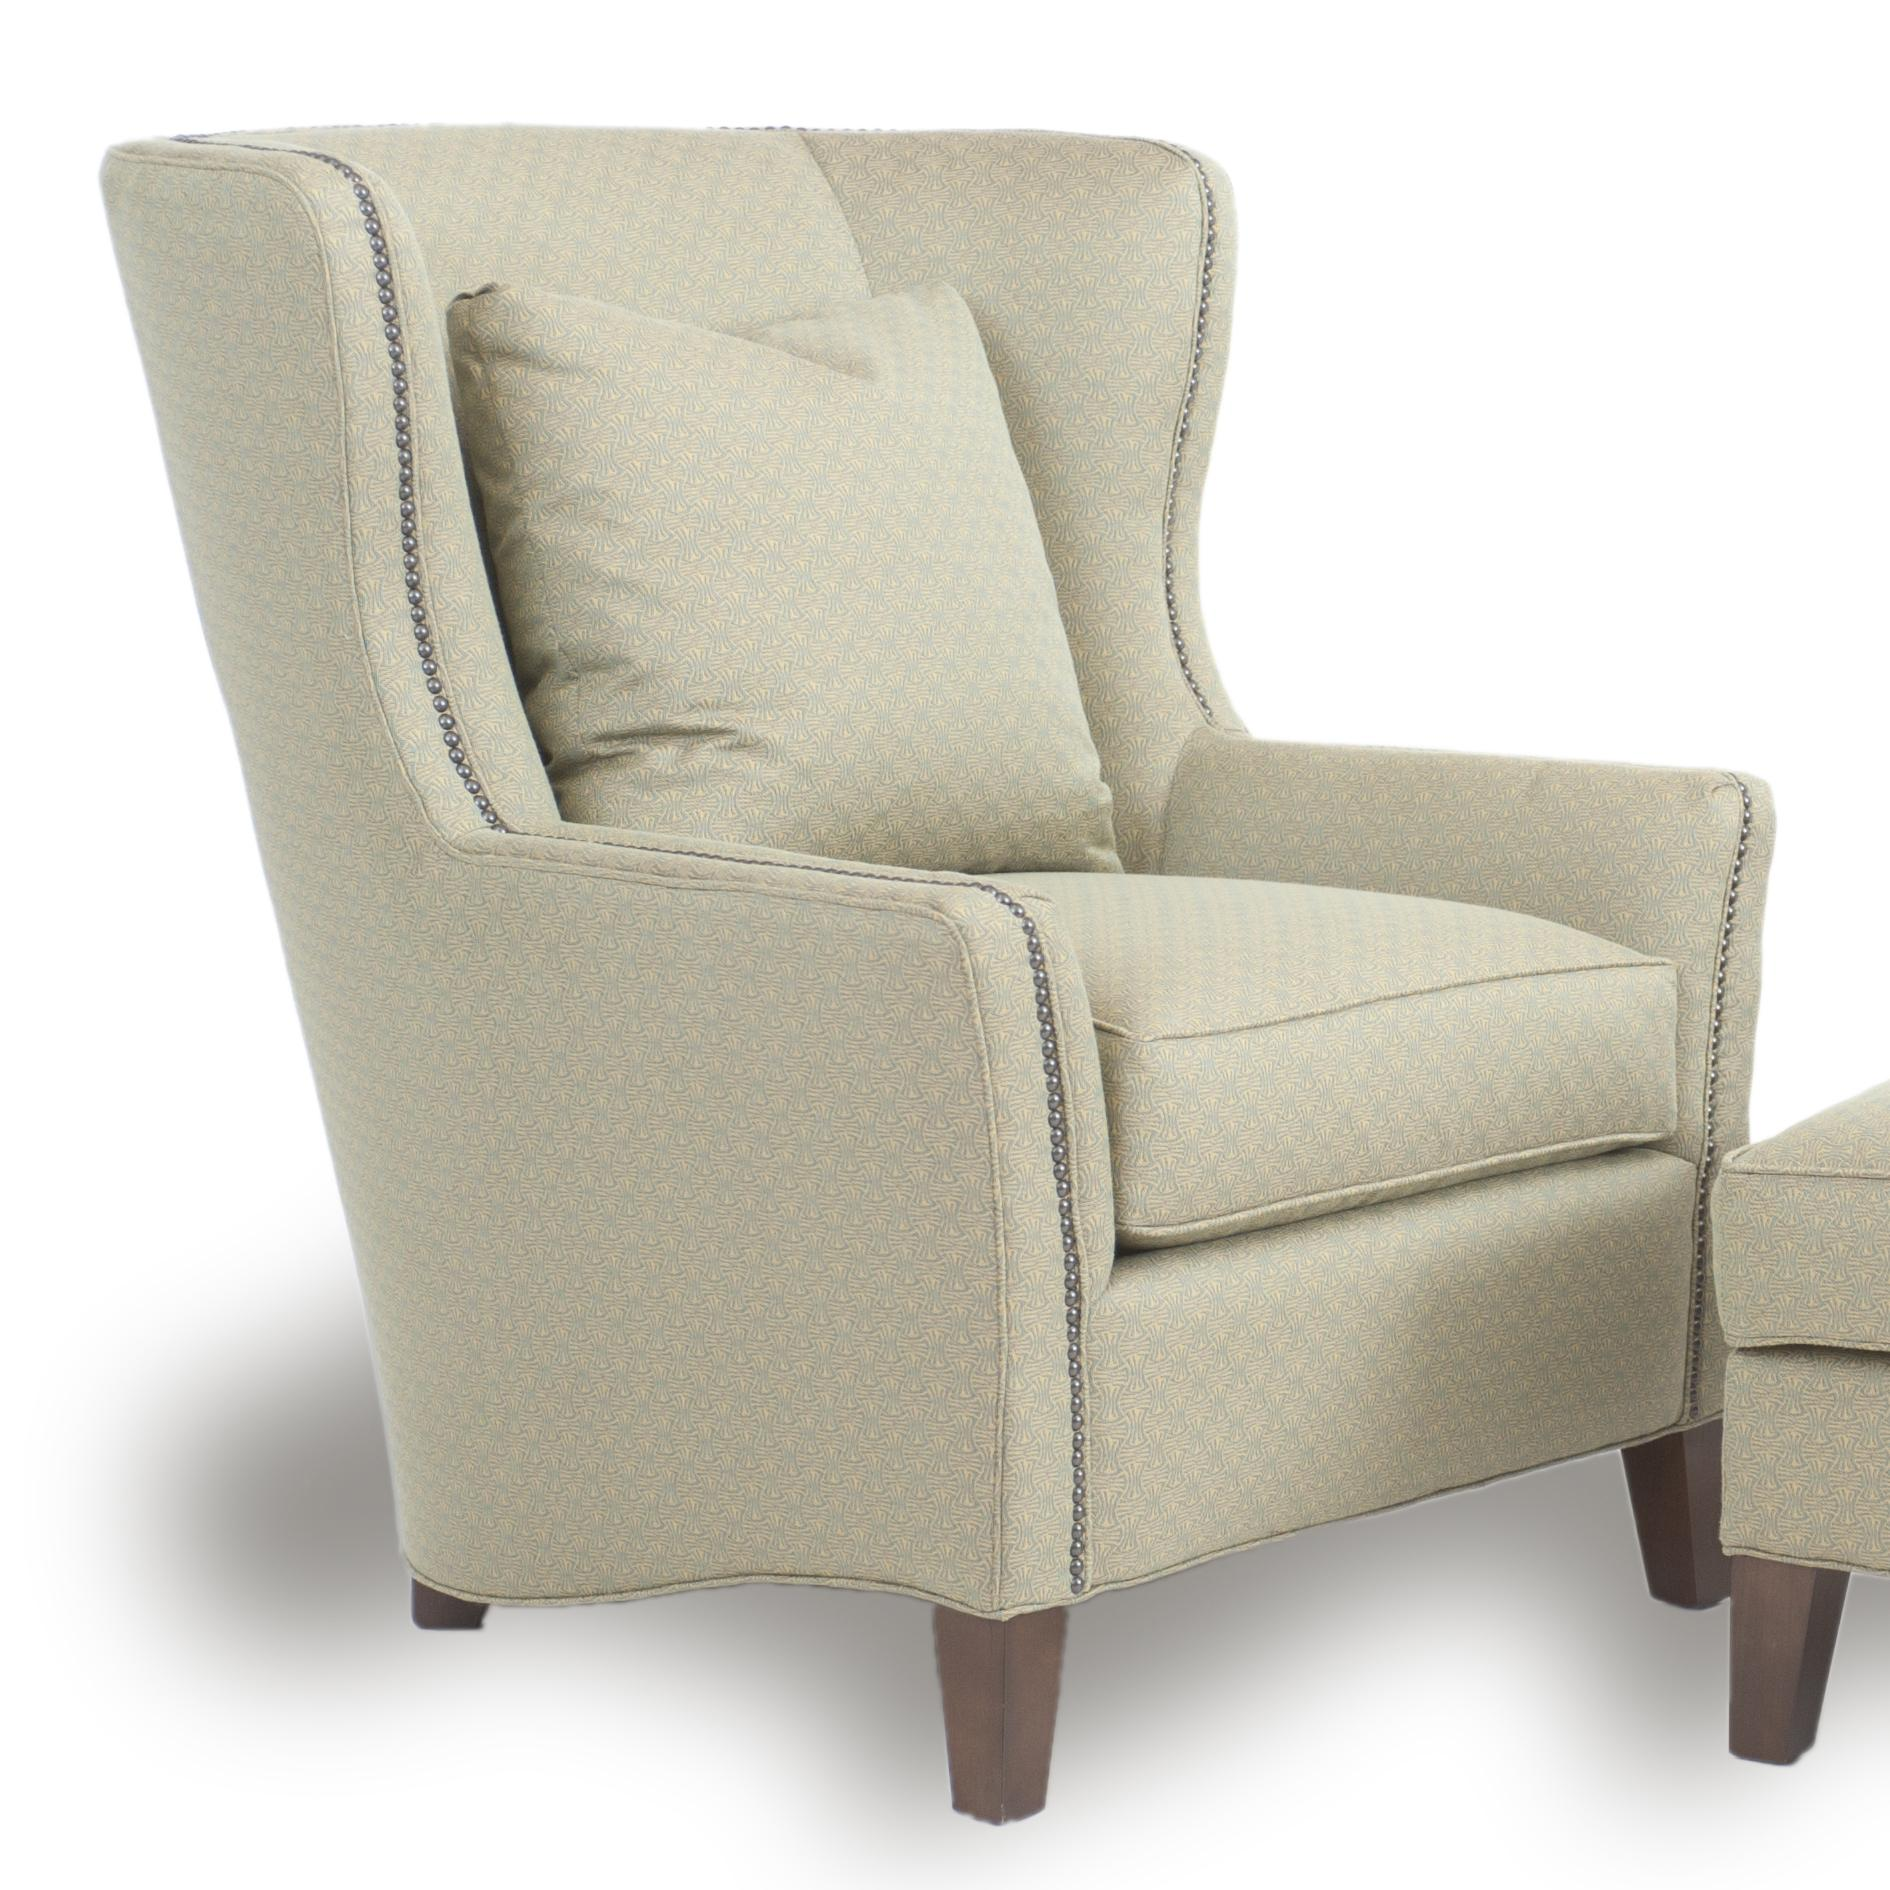 chairs and ottomans upholstered desk chair mat smith brothers accent sb contemporary wingback with track arms by